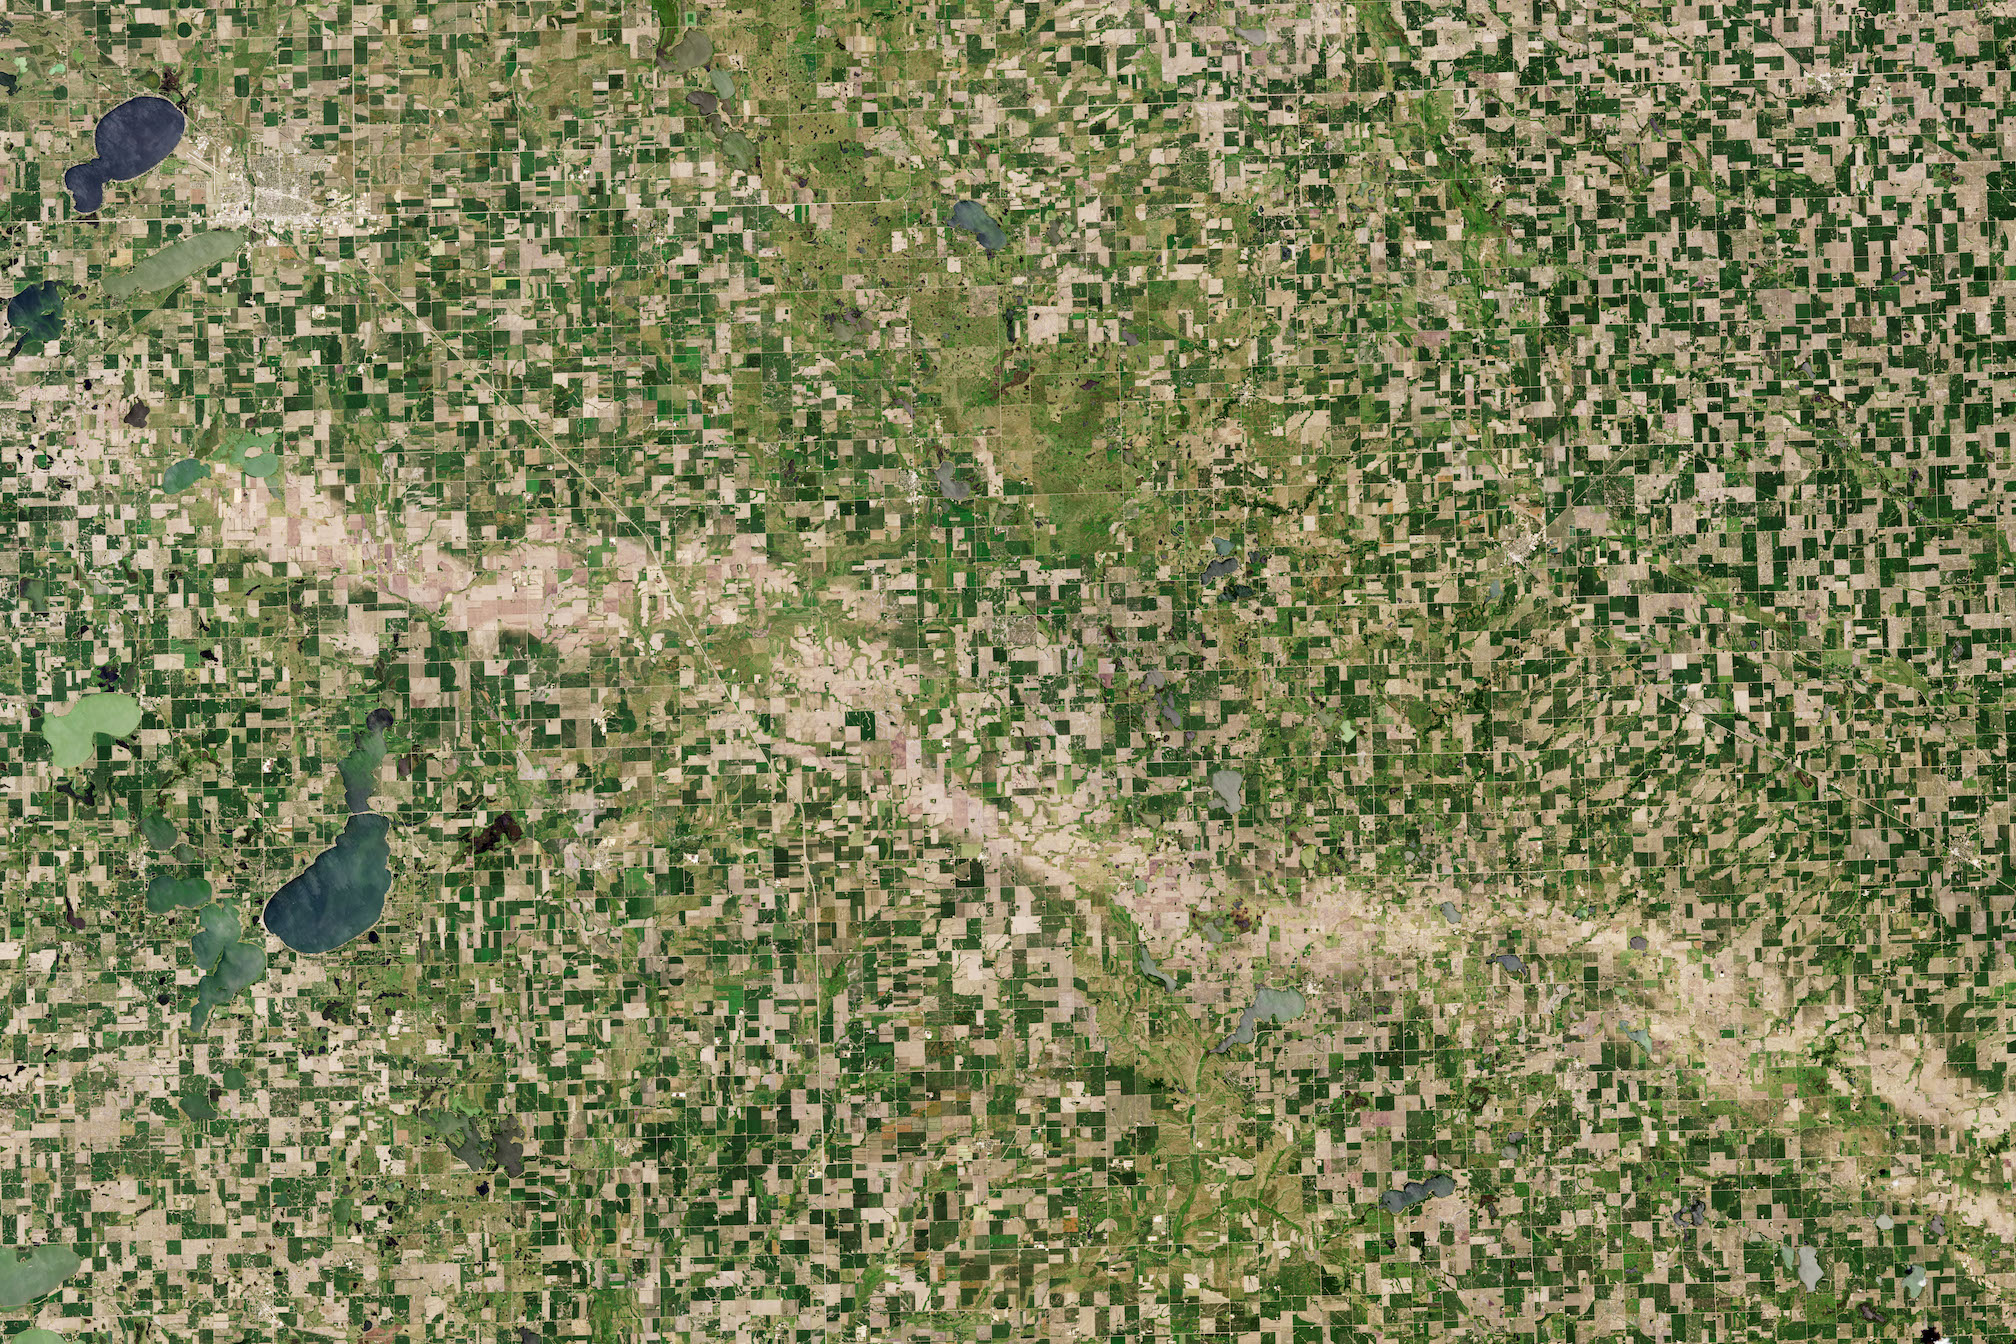 Today's Image of the Day comes thanks to the NASA Earth Observatory and features a look at hail damage in crop fields across South Dakota and Minnesota.